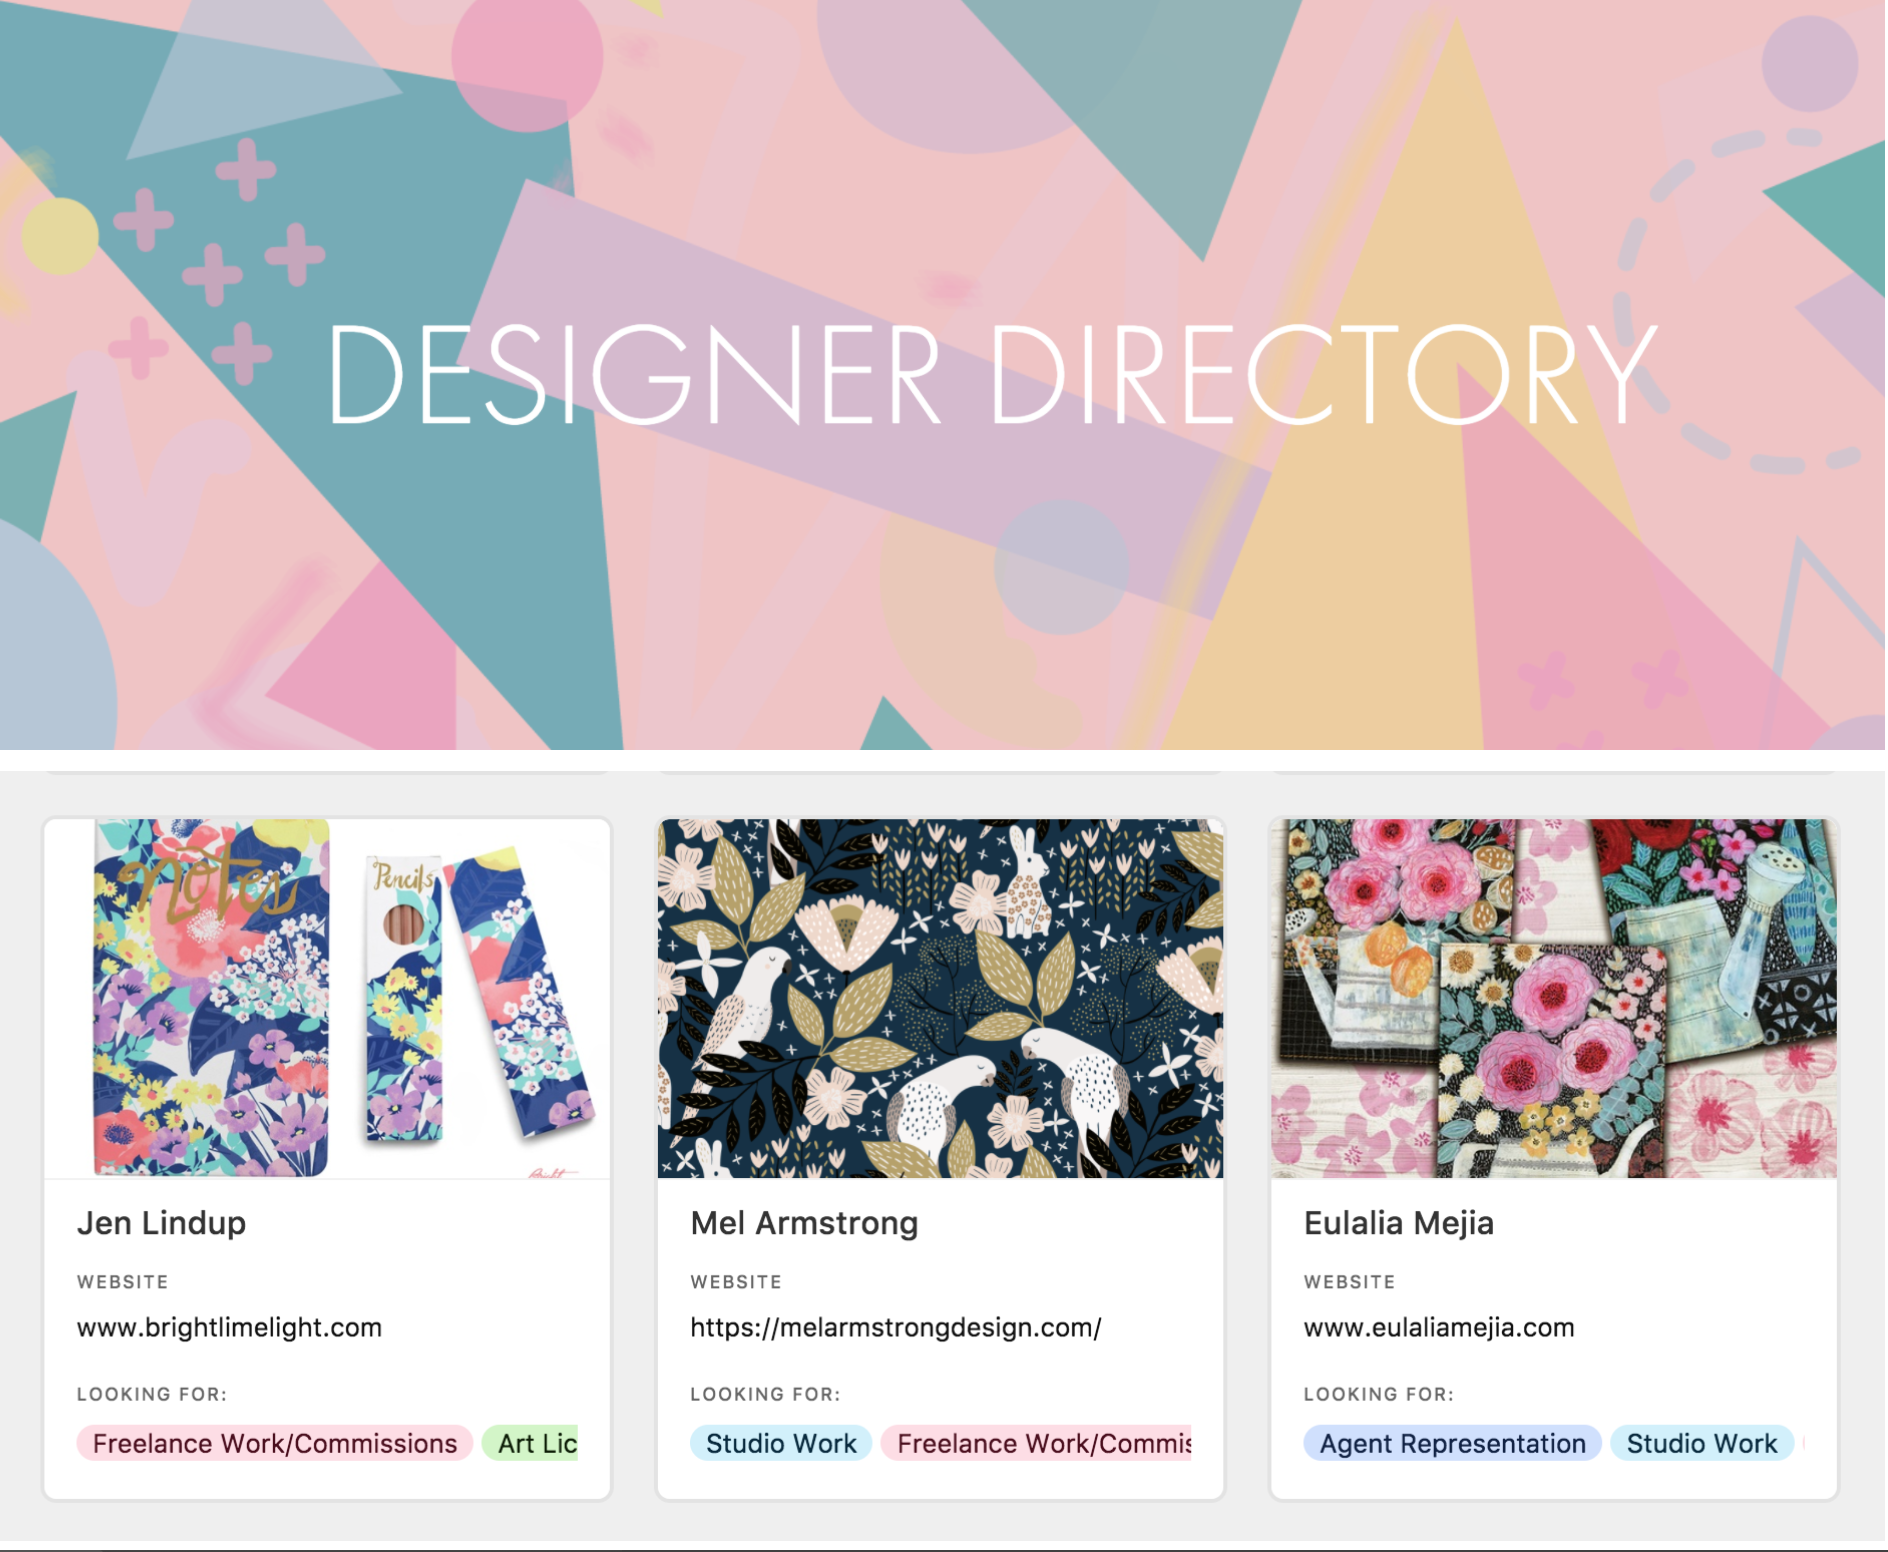 RISE DESIGN AND SHINE DESIGNERS DIRECTORY